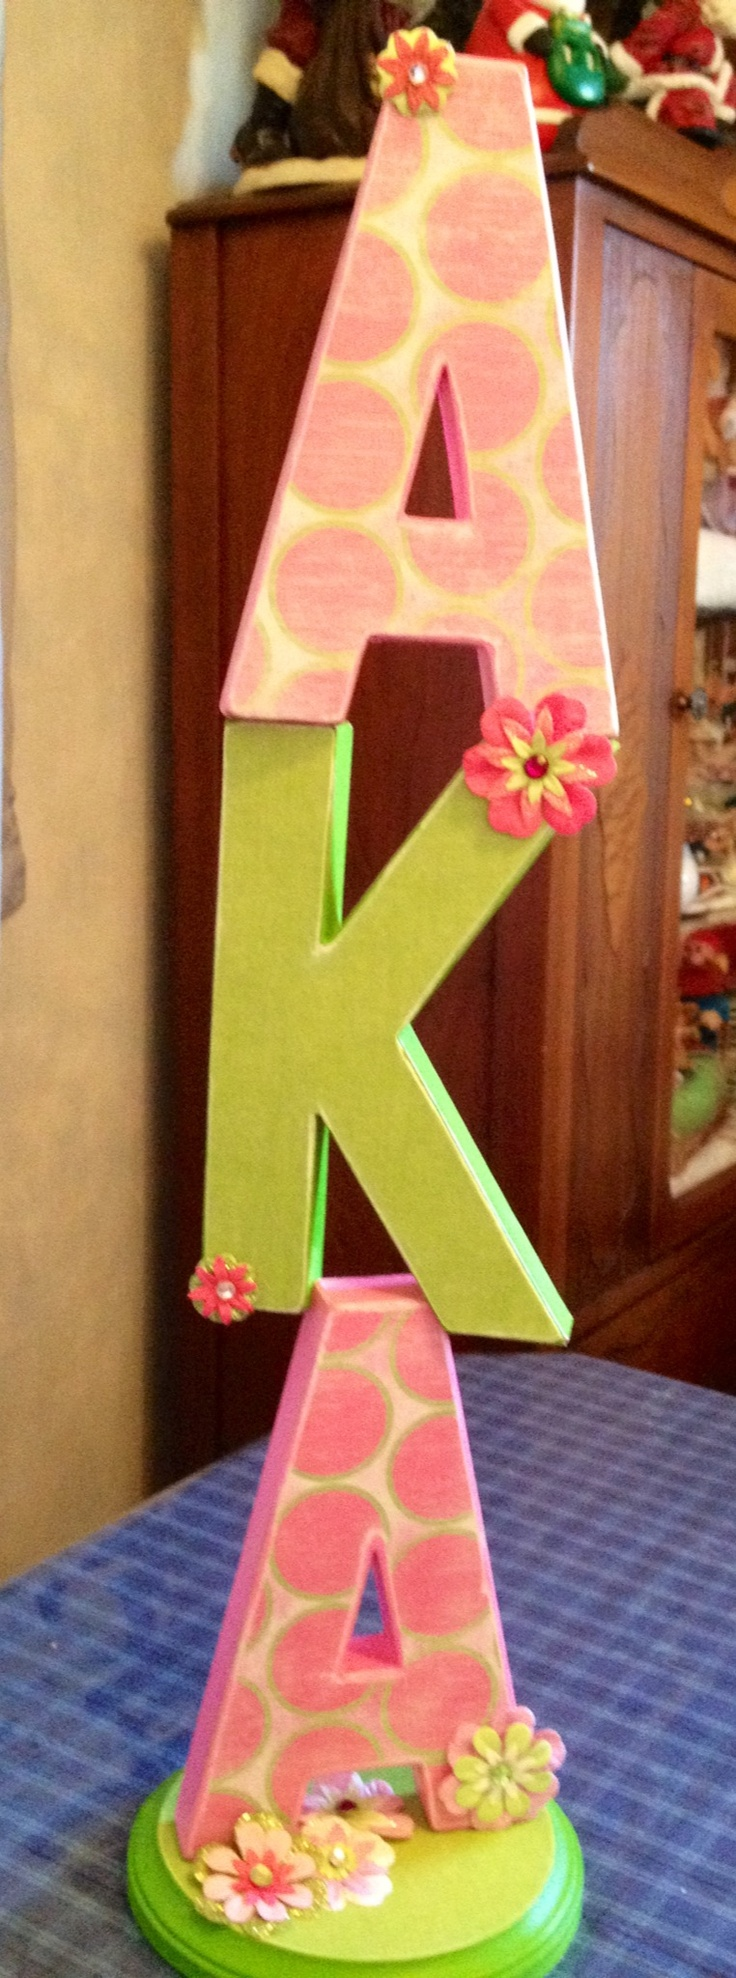 How to glue scrapbook paper to wood letters - Aka Paper M Ch Letters Painted And Then Modge Podged With Scrapbook Paper Attached Letters